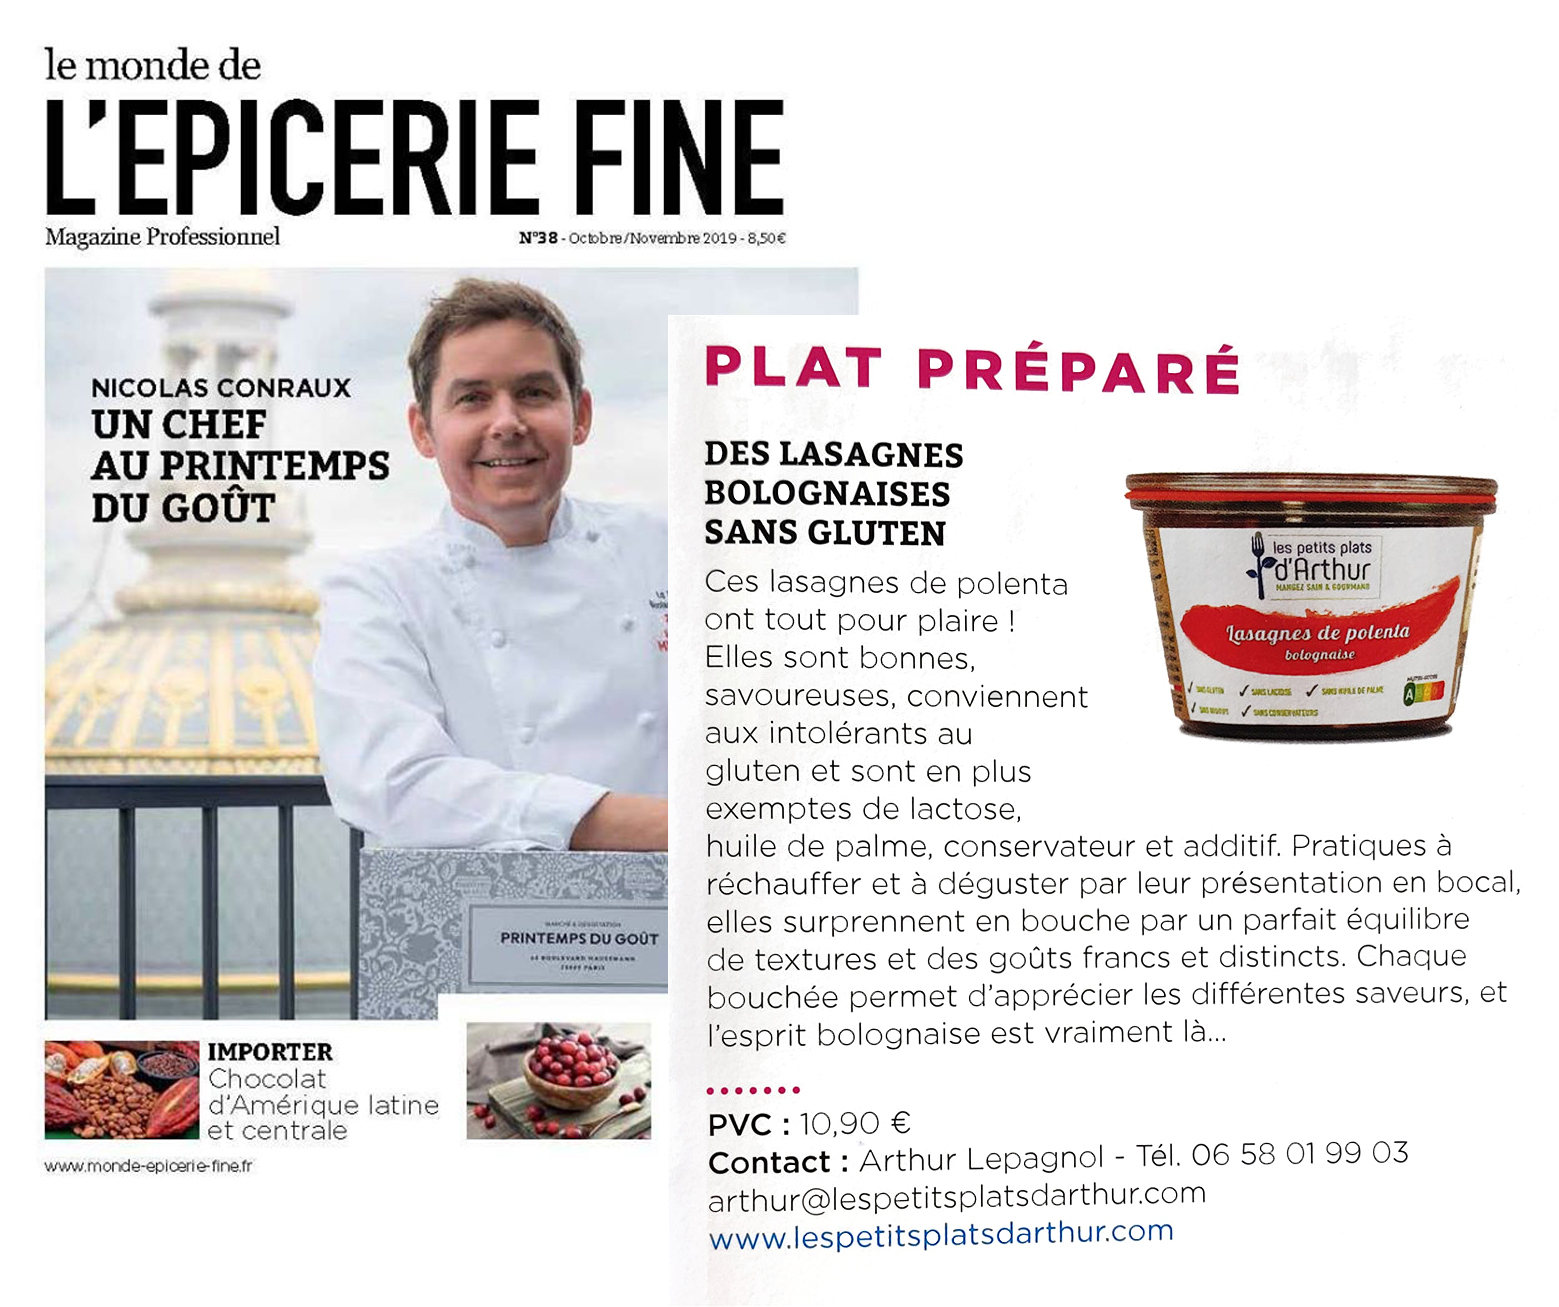 "Already cooked dishes from ""Le Monde de L'épicerie fine"" gluten free dishes"